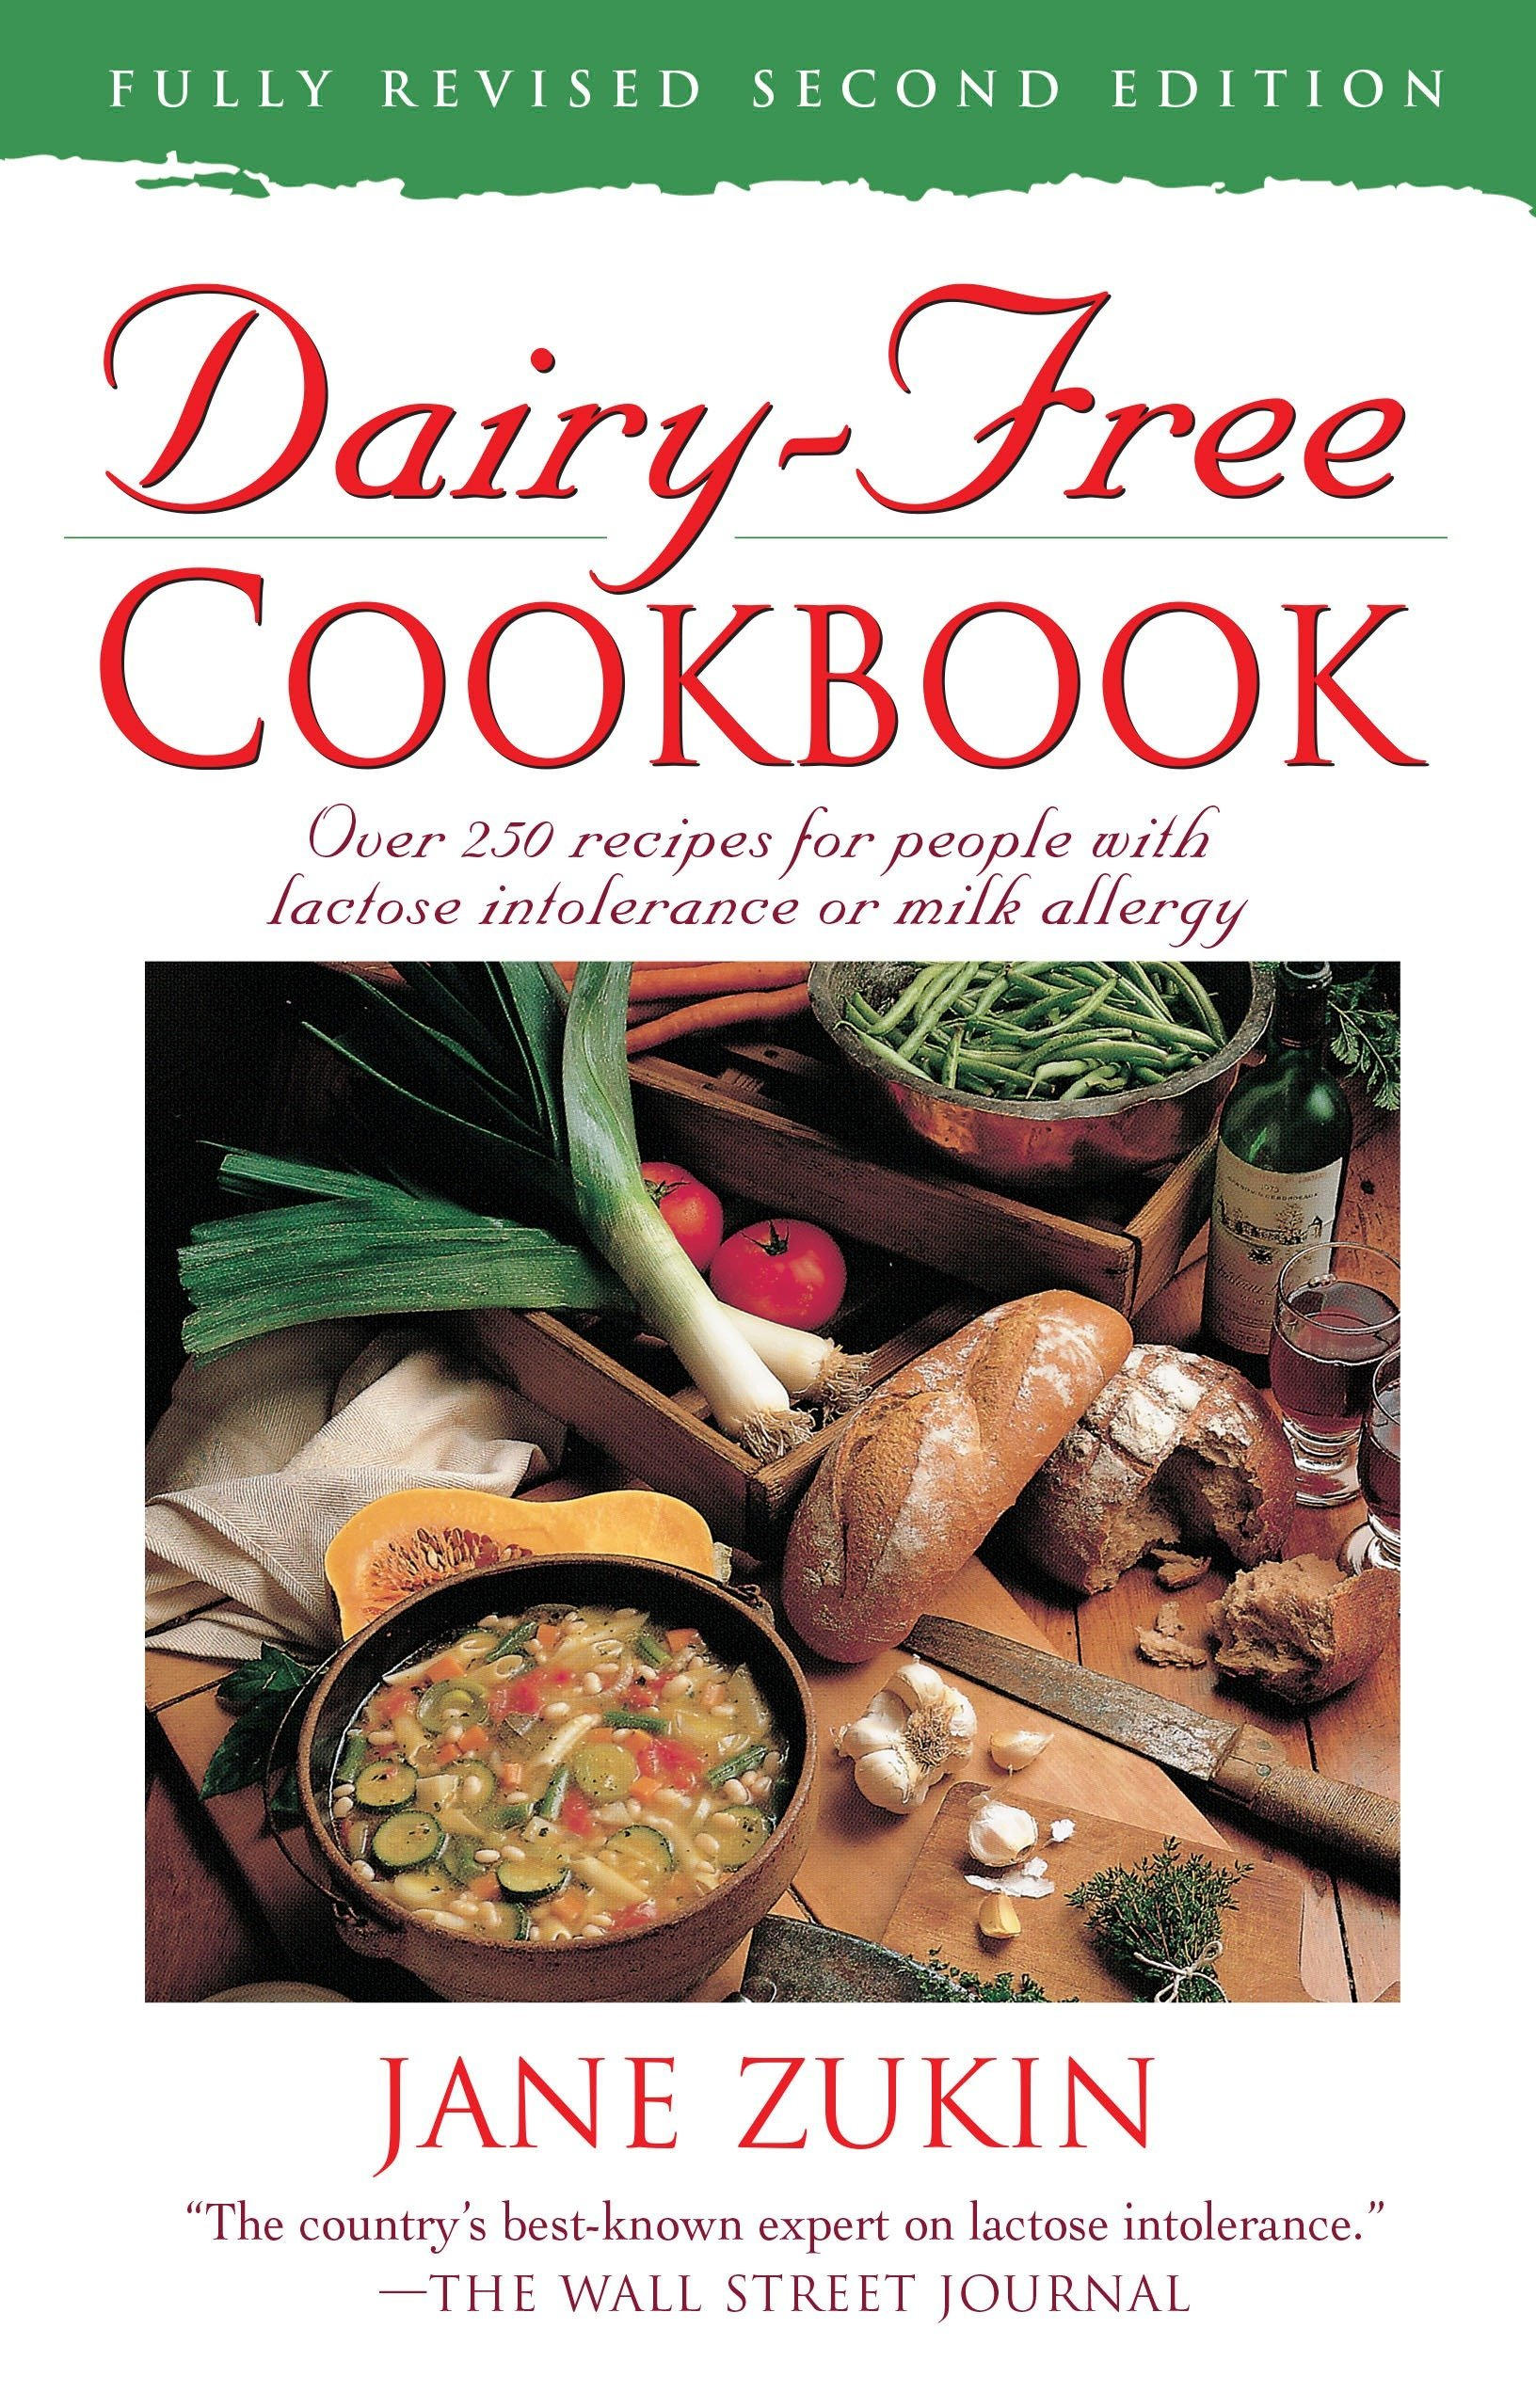 Dairy free cookbook fully revised 2nd edition over 250 recipes dairy free cookbook fully revised 2nd edition over 250 recipes for people with lactose intolerance or milk allergy jane zukin 9780761514671 forumfinder Image collections